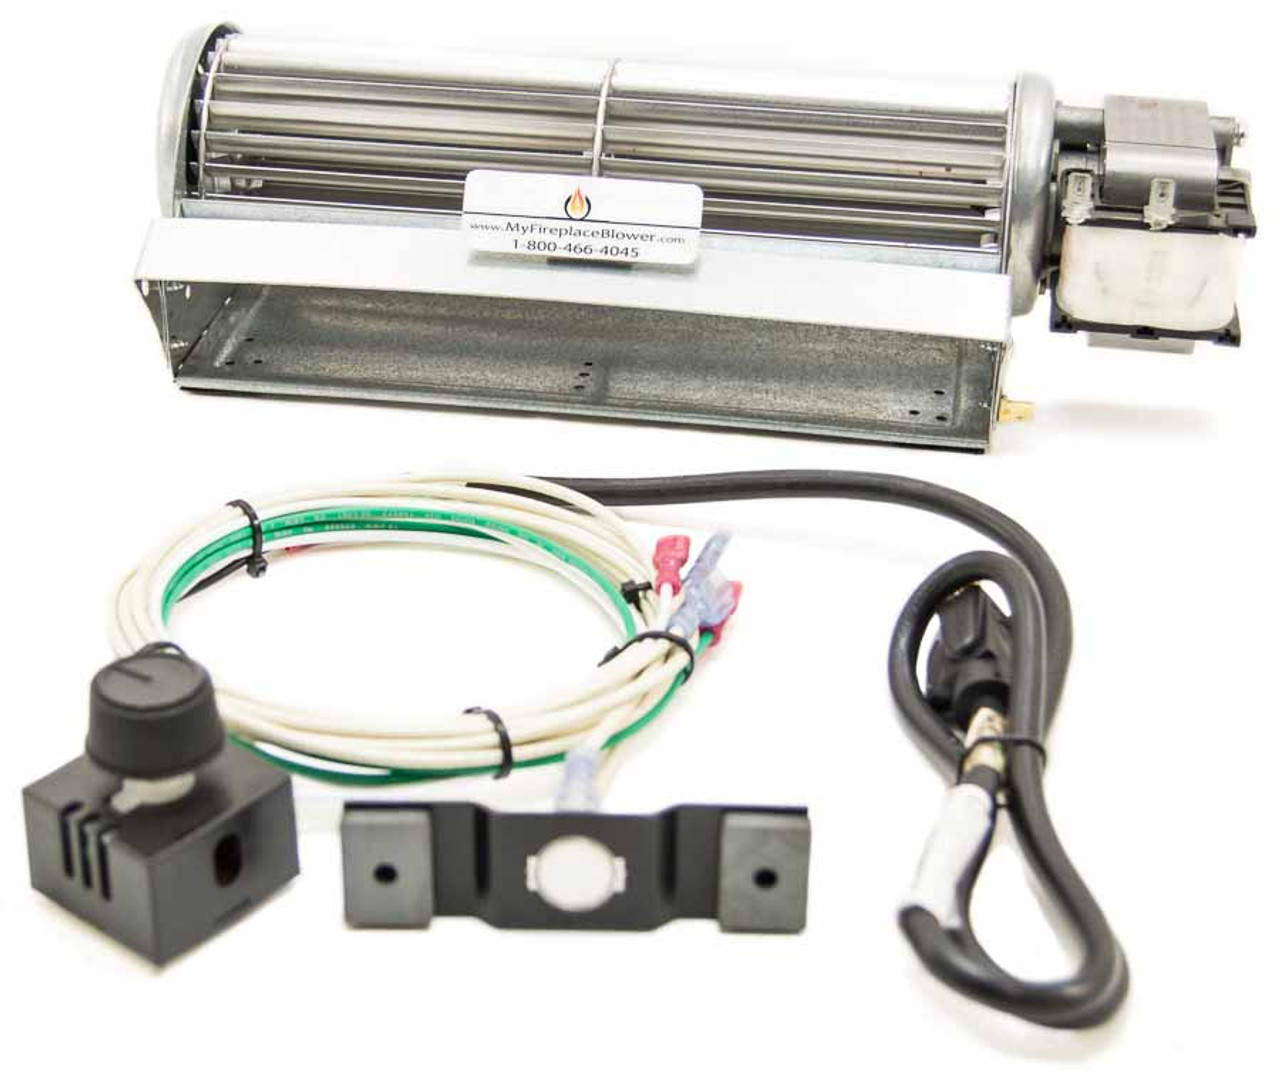 blot240 fireplace blower fan kit for monessen fireplaces  [ 1280 x 1074 Pixel ]